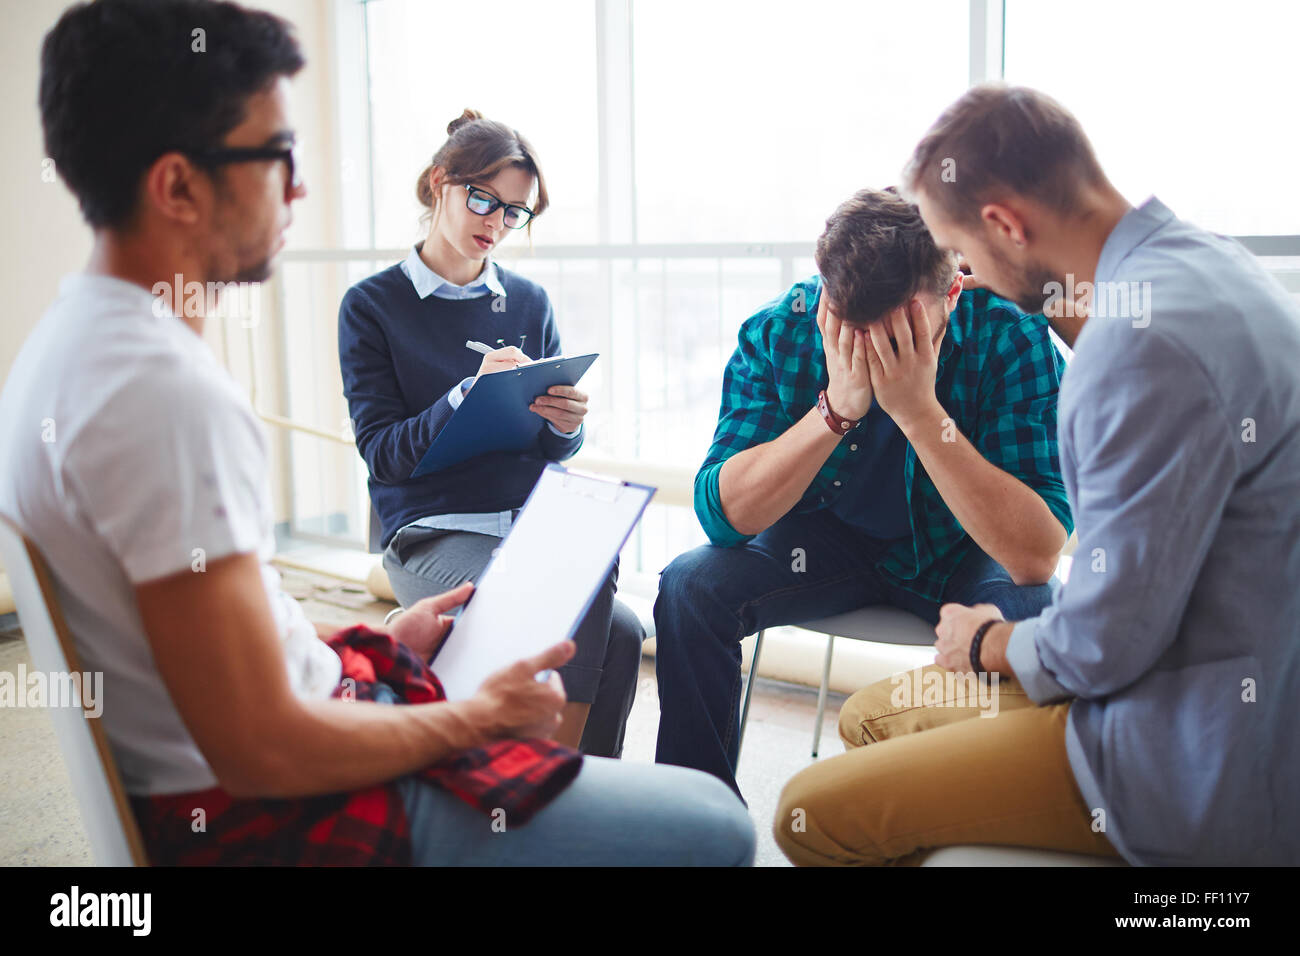 Group of helpful students supporting their despaired friend - Stock Image